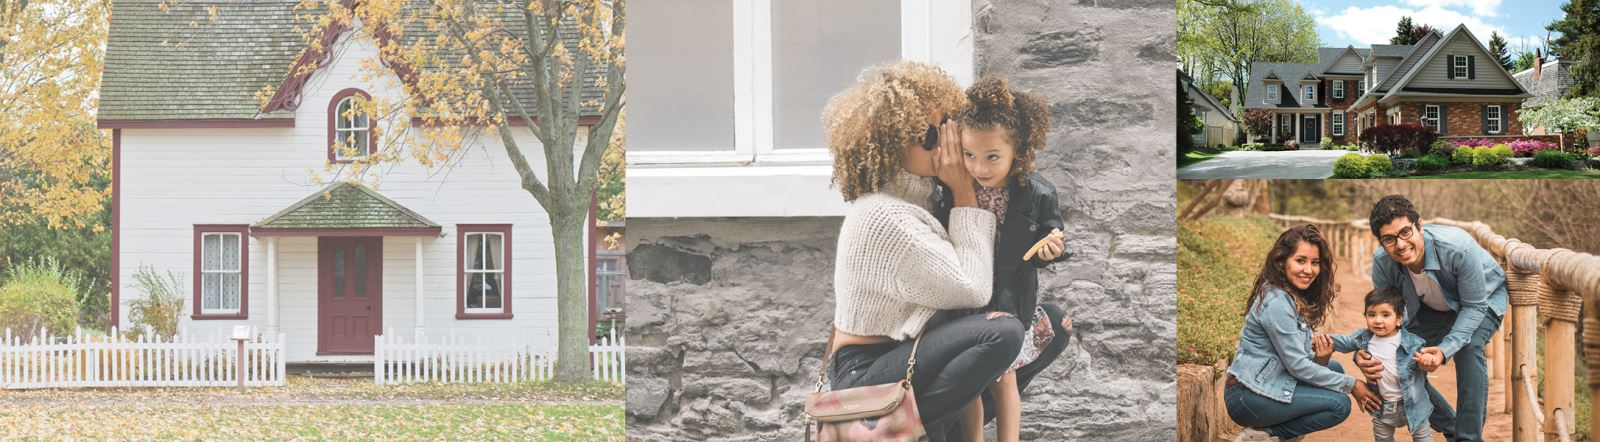 Small white cottage home with red trim, mother with curly hair whispering into daughter's ear, large 2 story brick house with colorful floral landscaping, mother, father, and toddler son posing as a family.